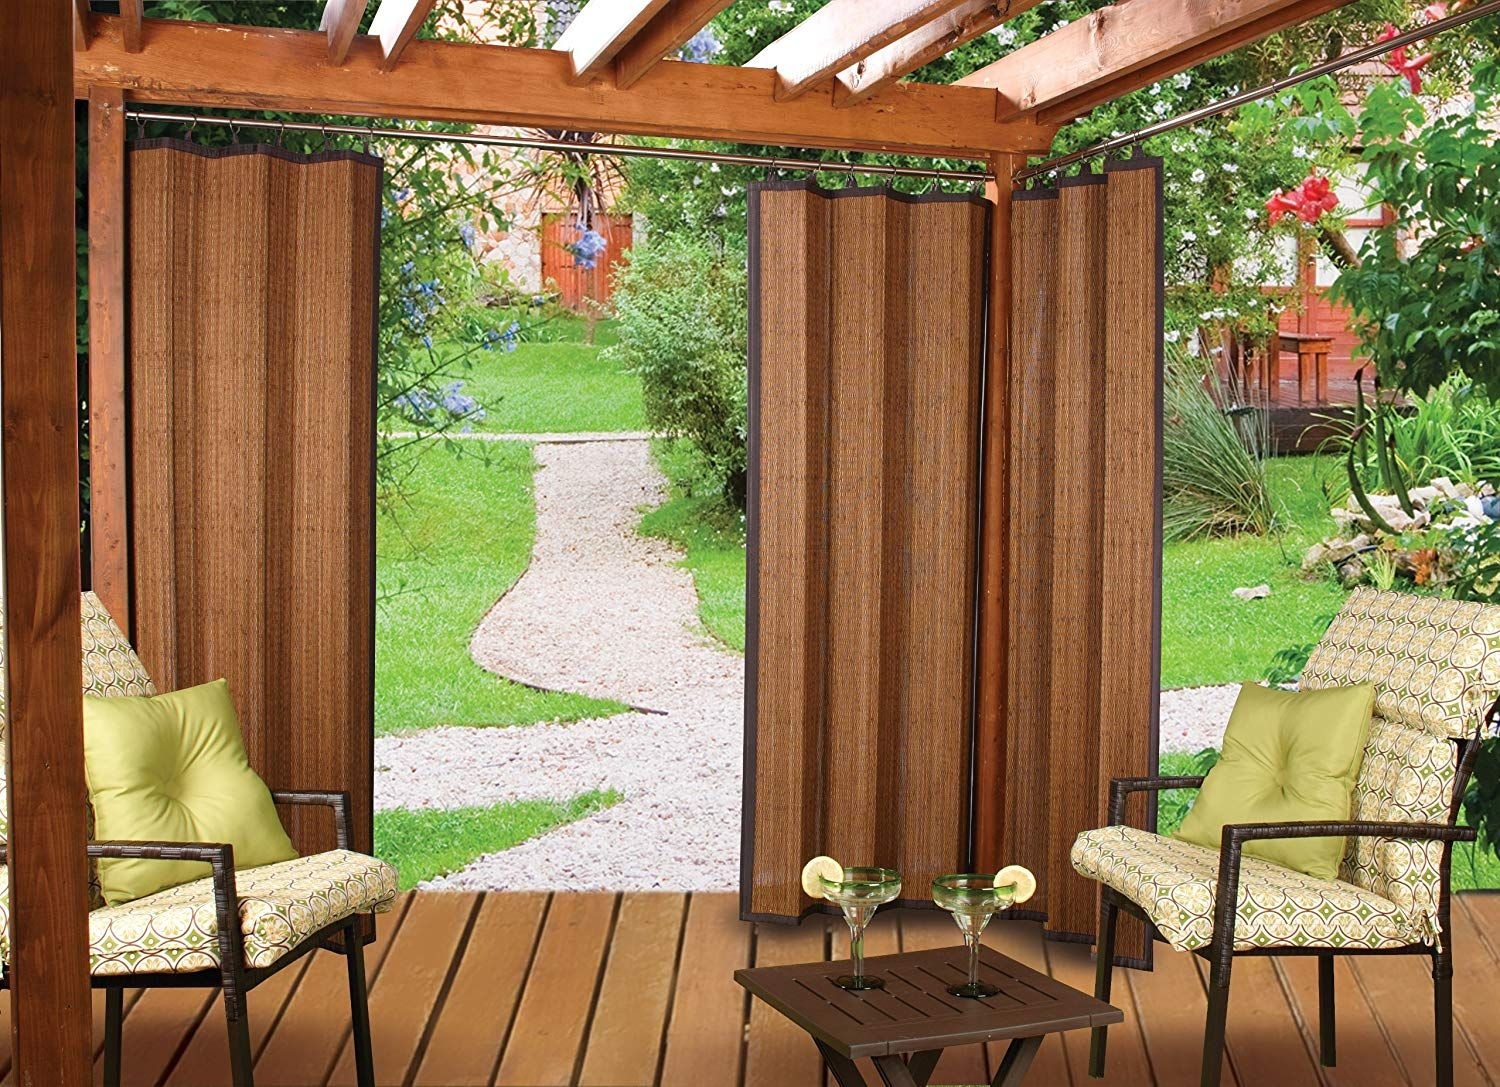 Outdoor Bamboo Curtains Delicious Solutions To Sun Protection